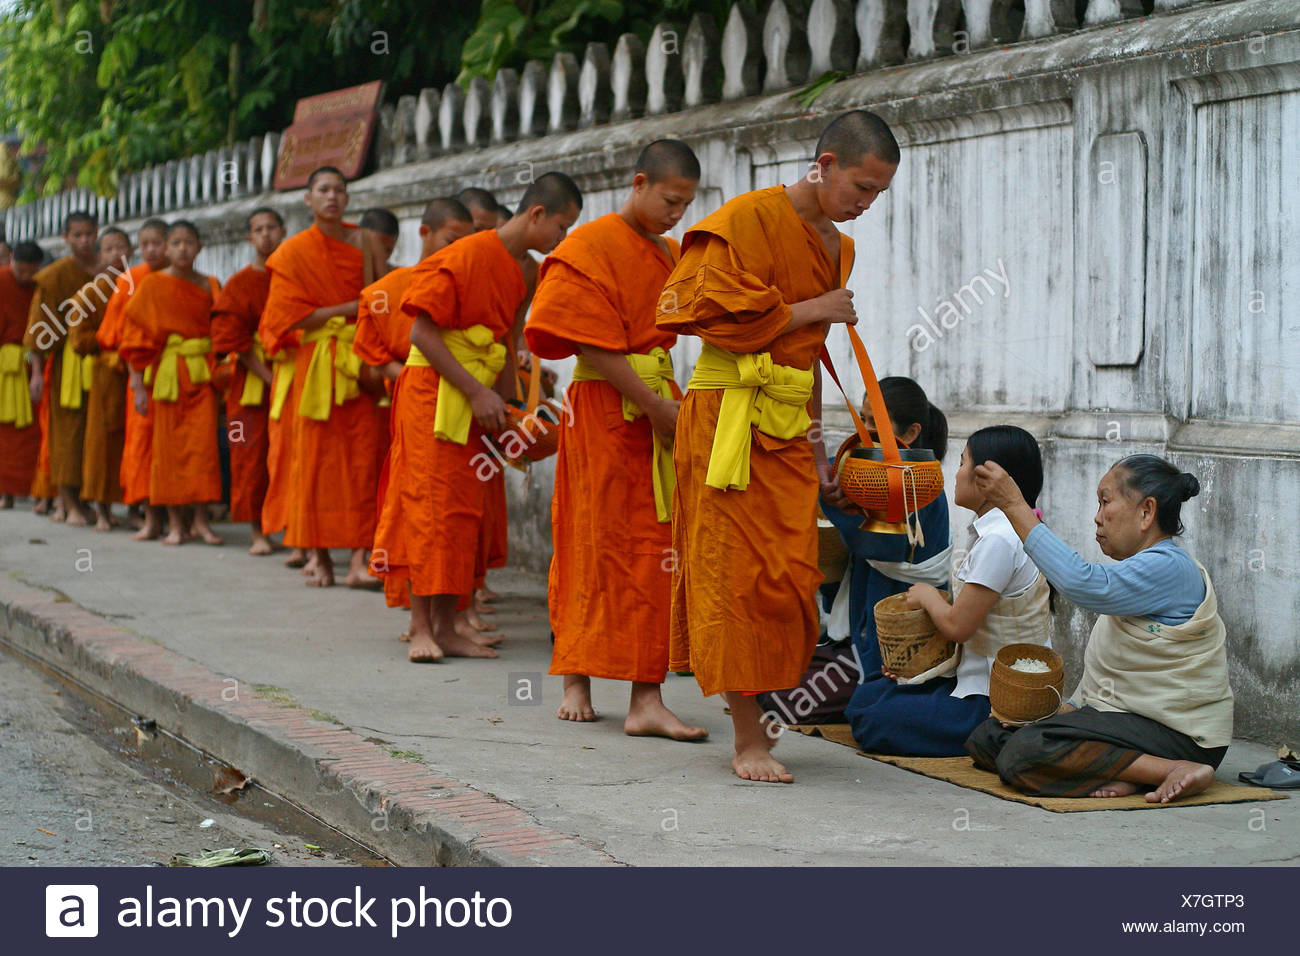 Monks and novices begging for their daily food in Luang Prabang, Laos - Stock Image